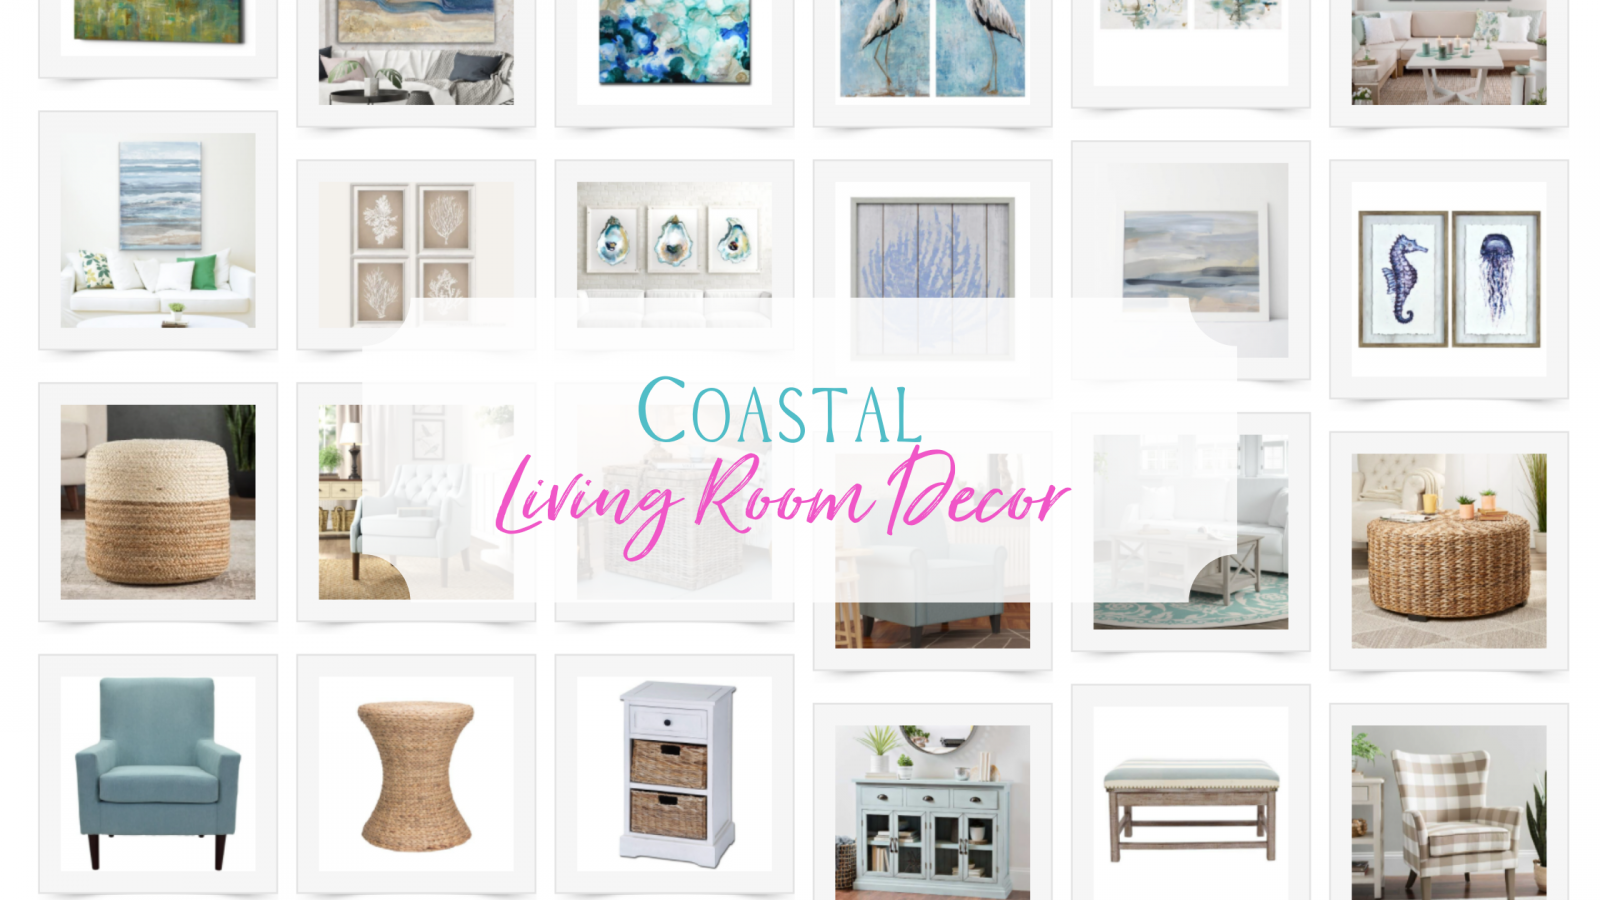 Coastal living room decor like chairs, art, rugs and lamps